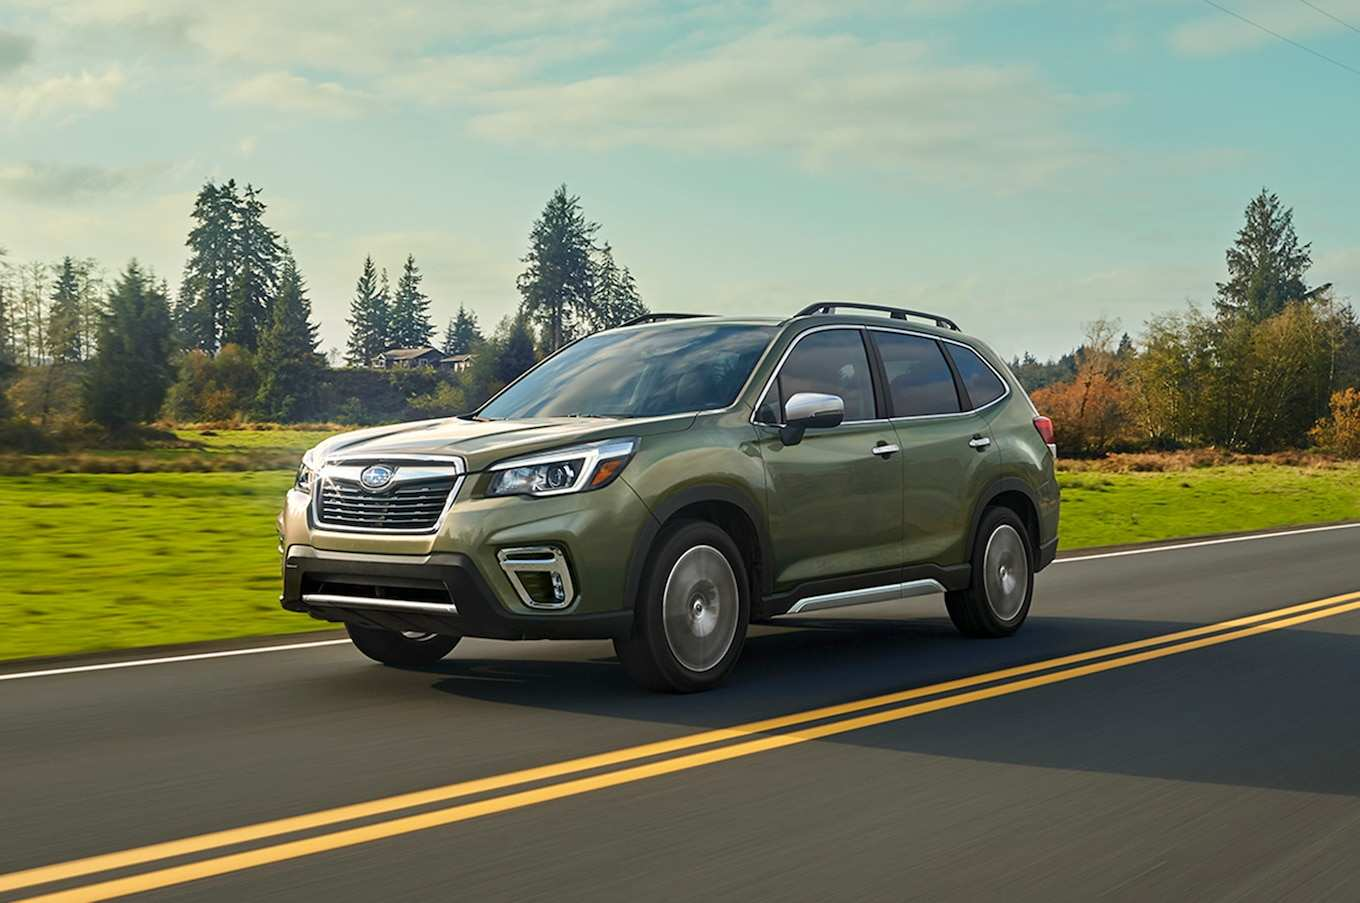 18 The 2020 Subaru Forester Towing Capacity Specs and Review for 2020 Subaru Forester Towing Capacity